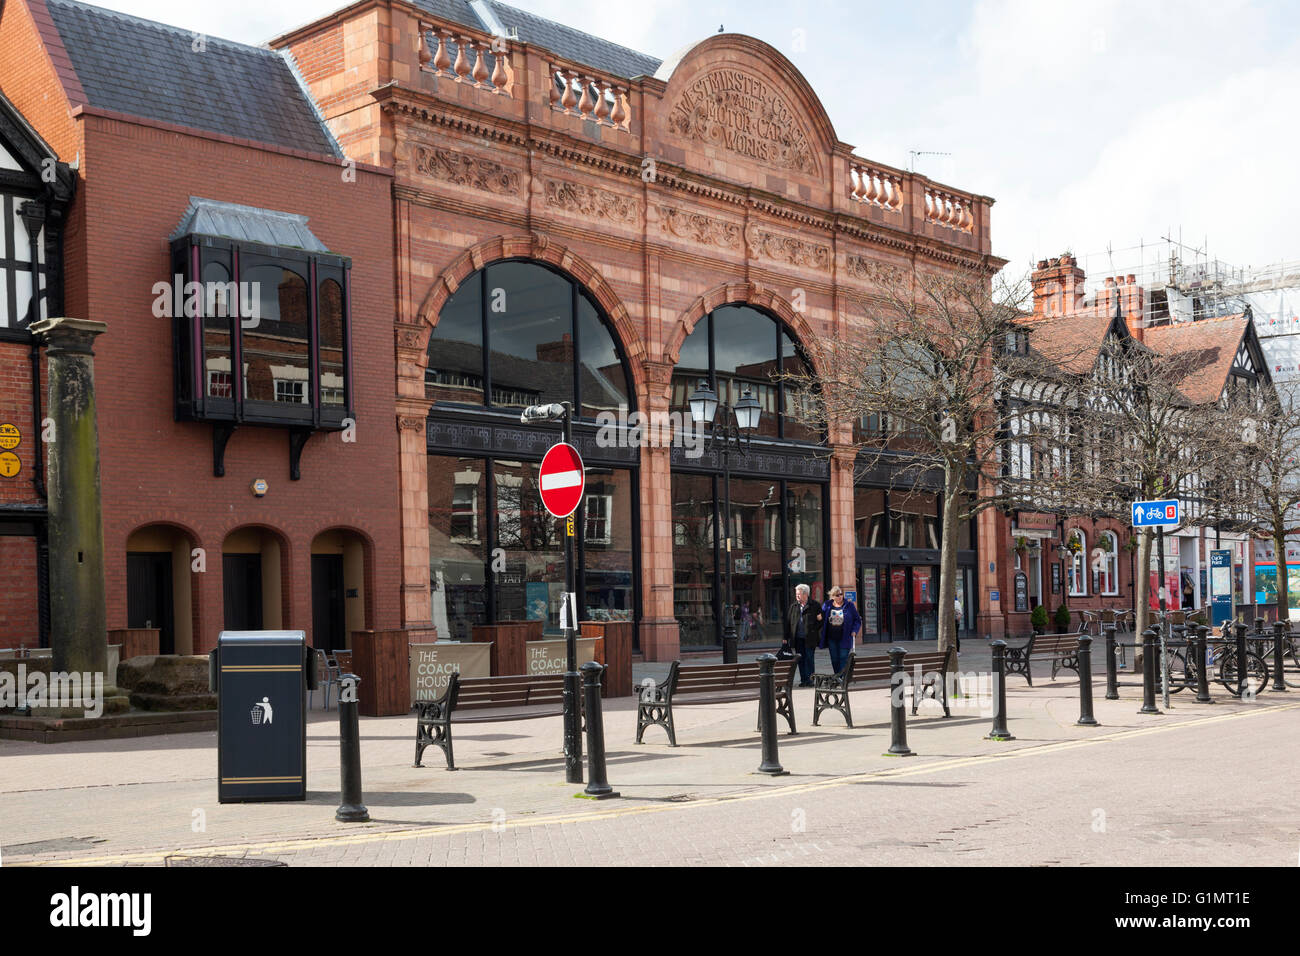 Westminster Coach and Motor Car Works, Chester, Cheshire, England - Stock Image